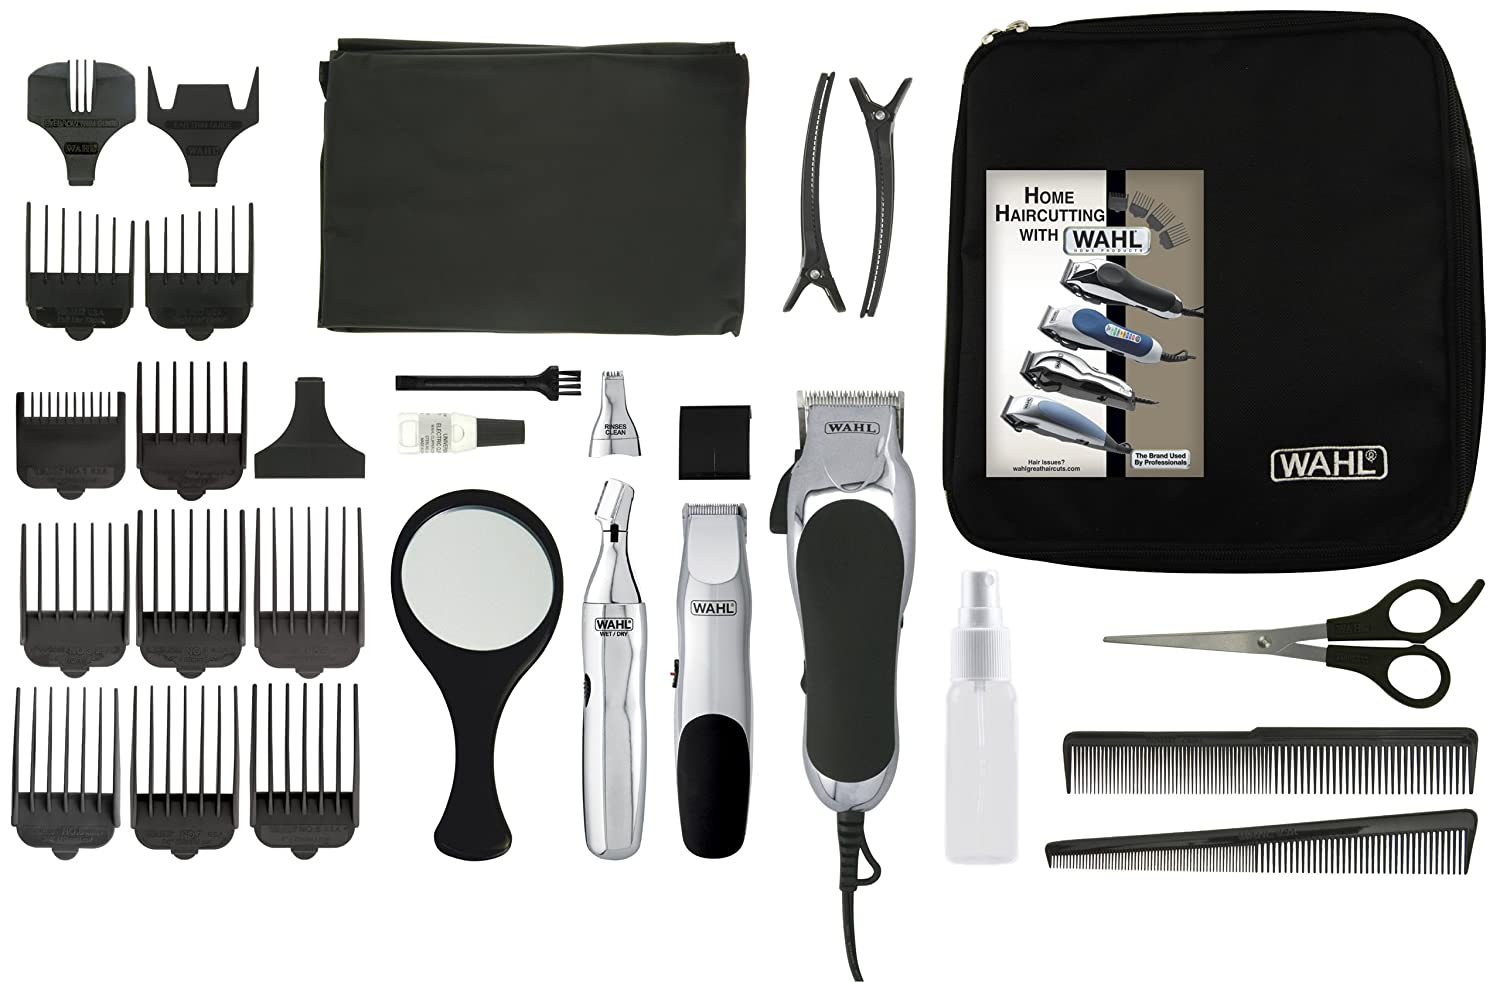 Wahl Professional Hair Cutting  Kit  30 Piece Trimmer